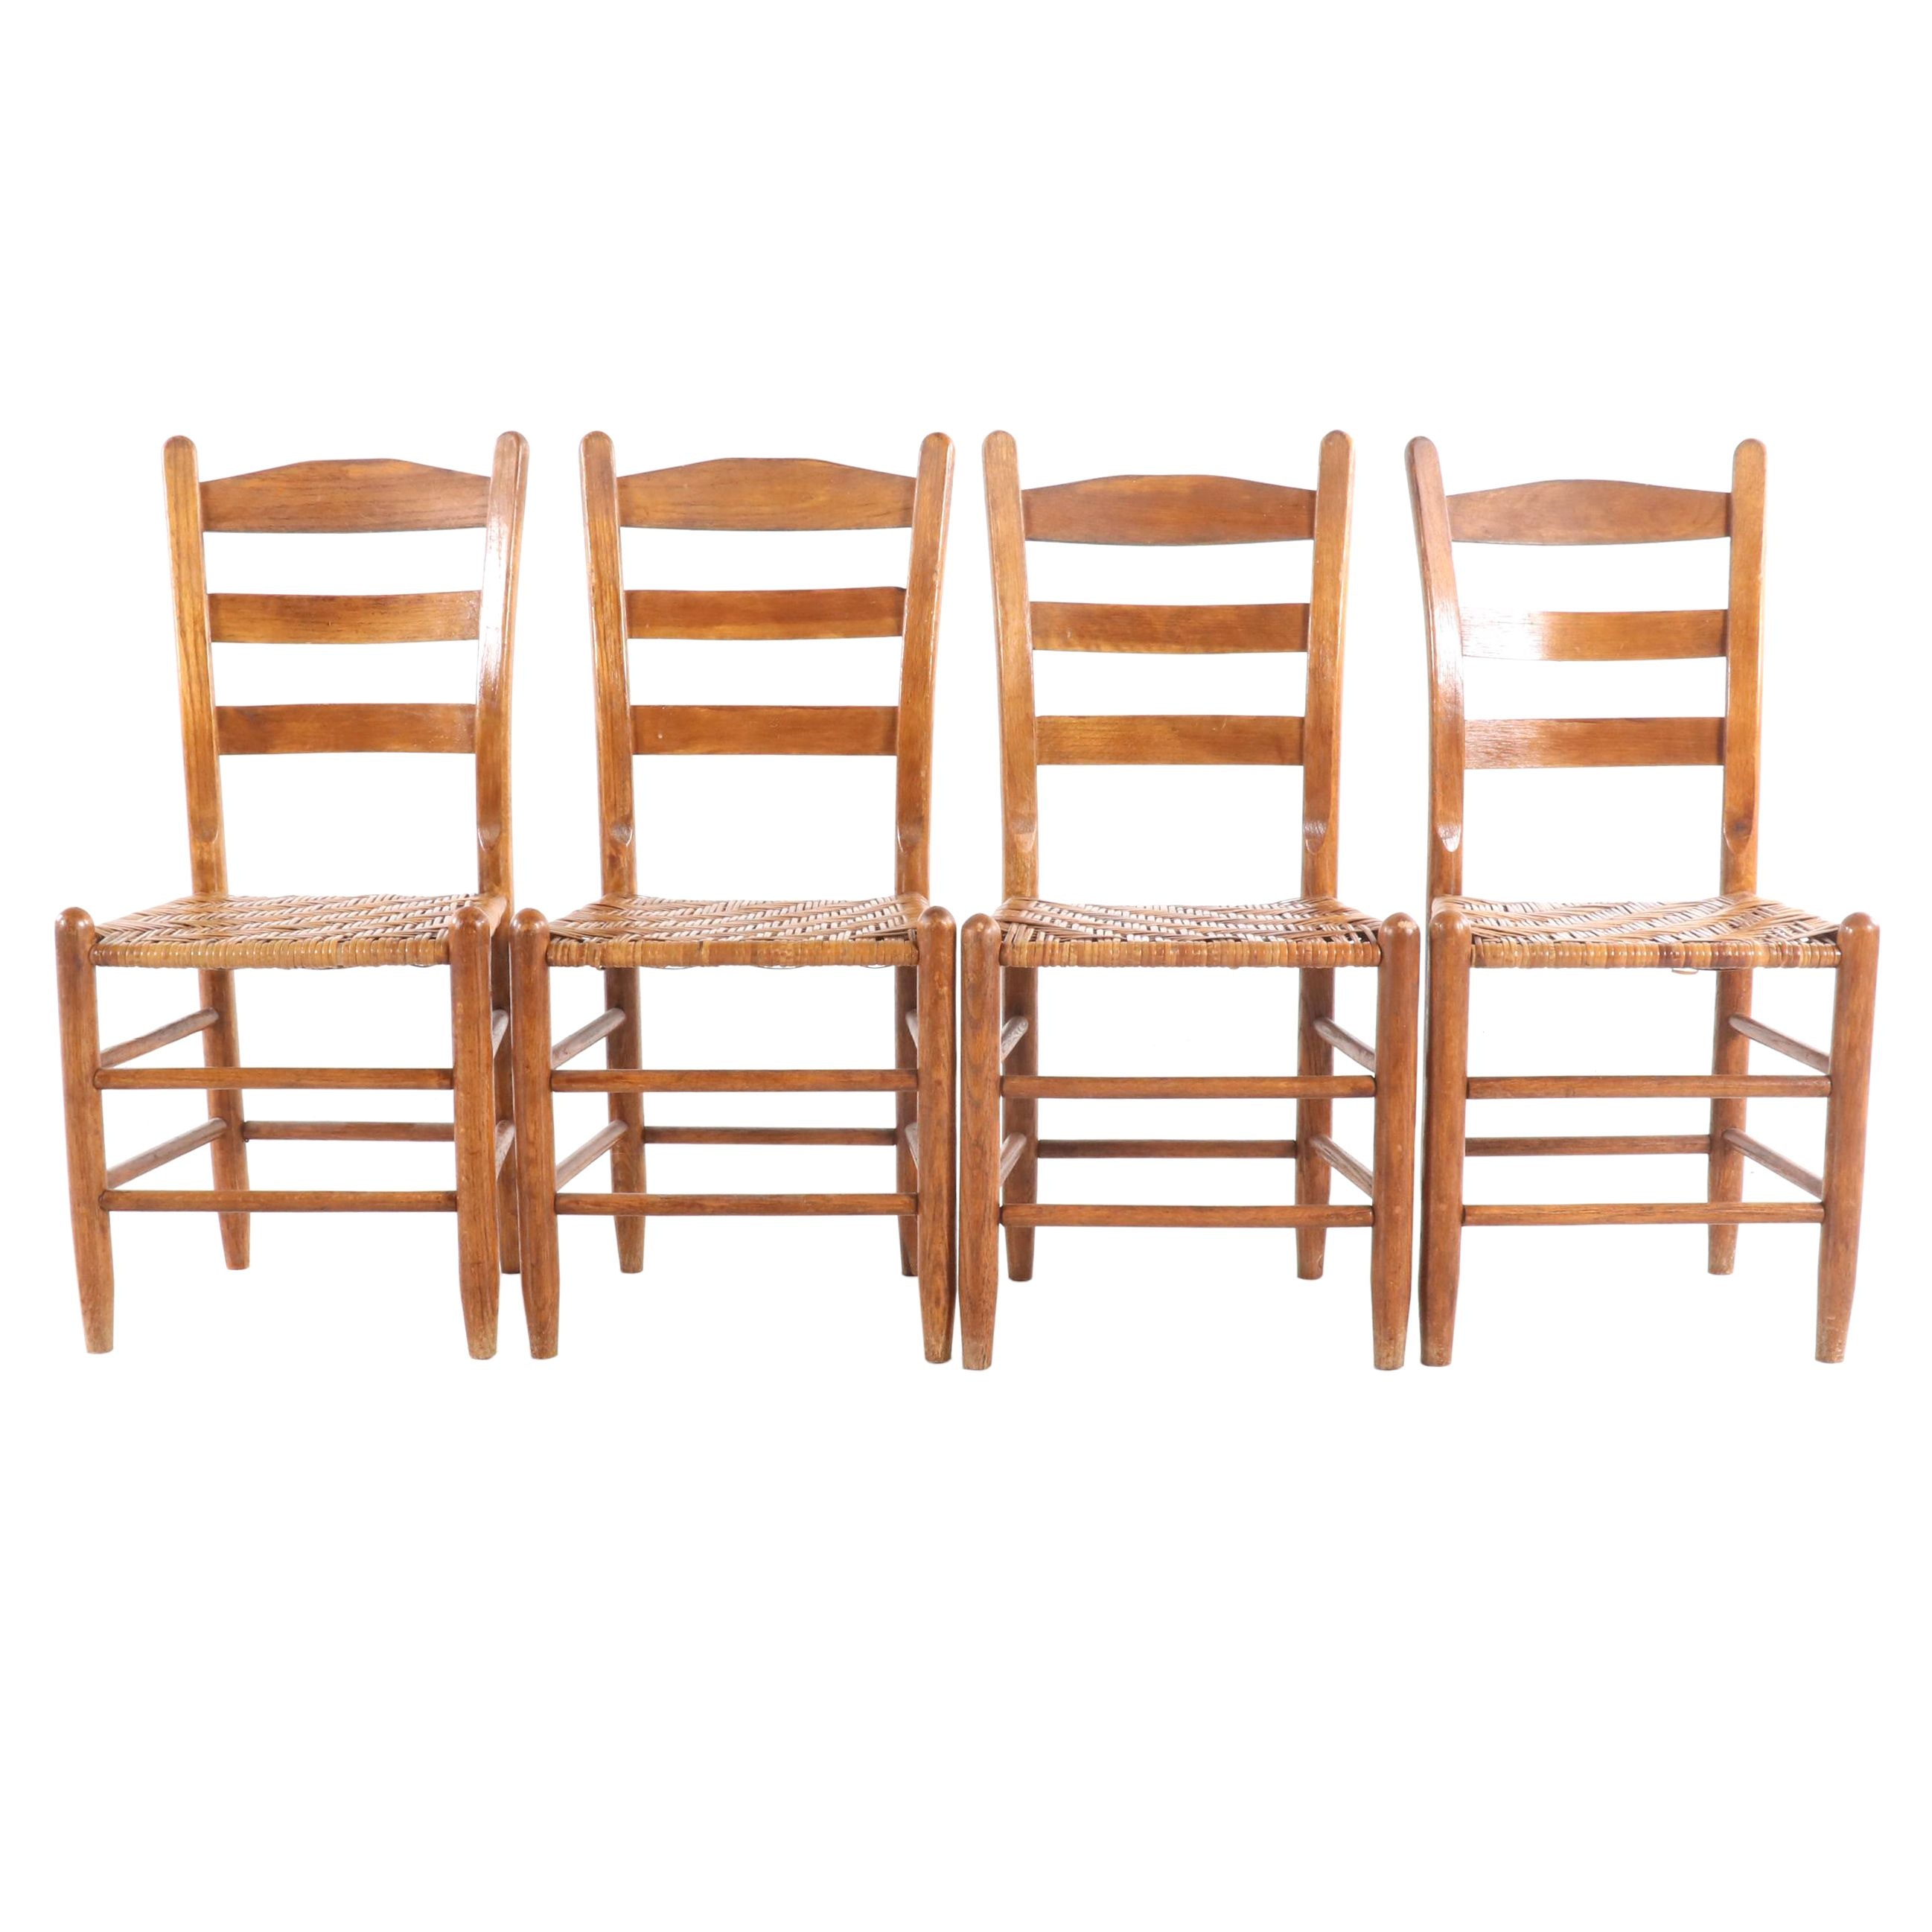 American Primitive Wooden Ladder Back Cane Seat Side Chairs, Mid 19th Century